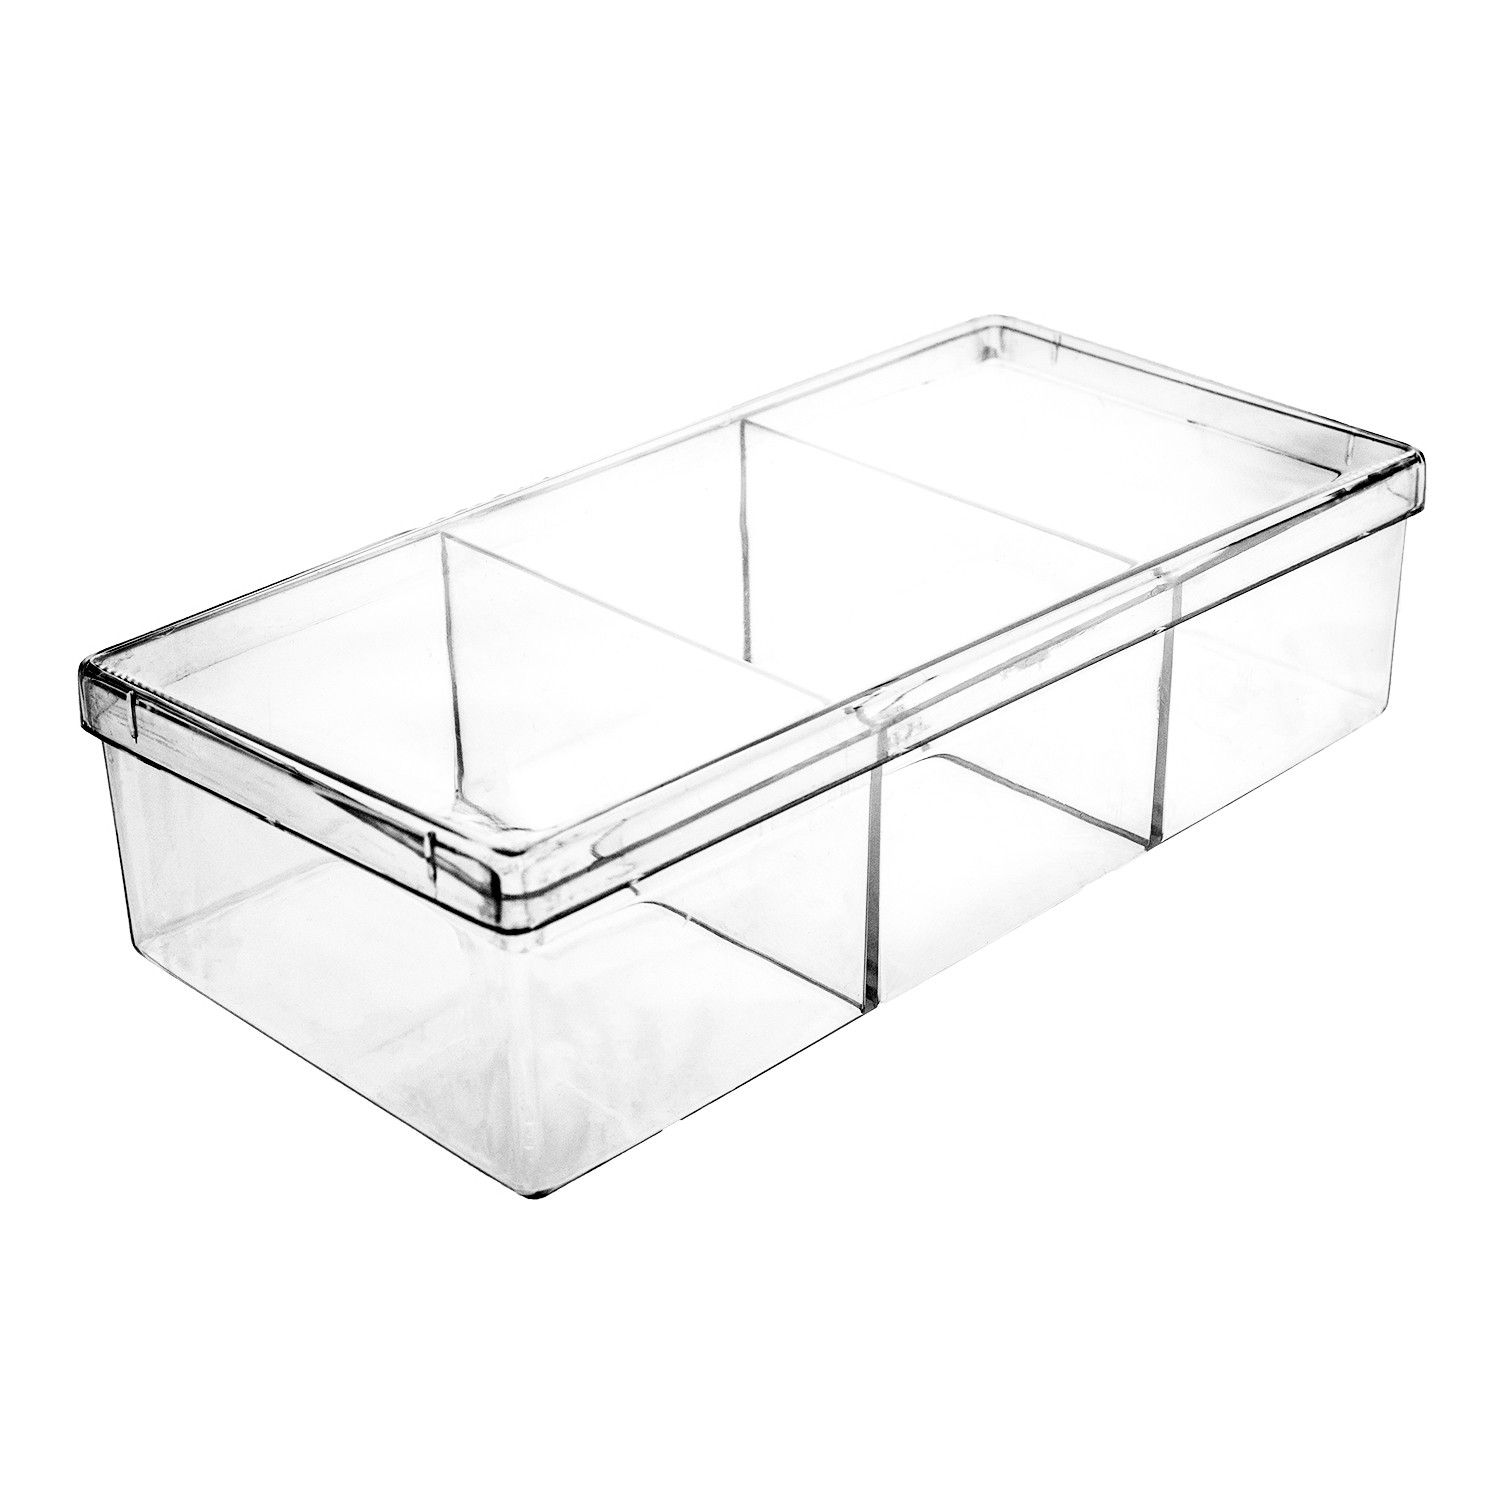 Square Plastic Container With Dividers 20 Oz Storage Capacity 6 3 4 W X 1 5 8 H X 3 3 16 D Made Using H Plastic Containers Kitchen Food Storage Food Storage